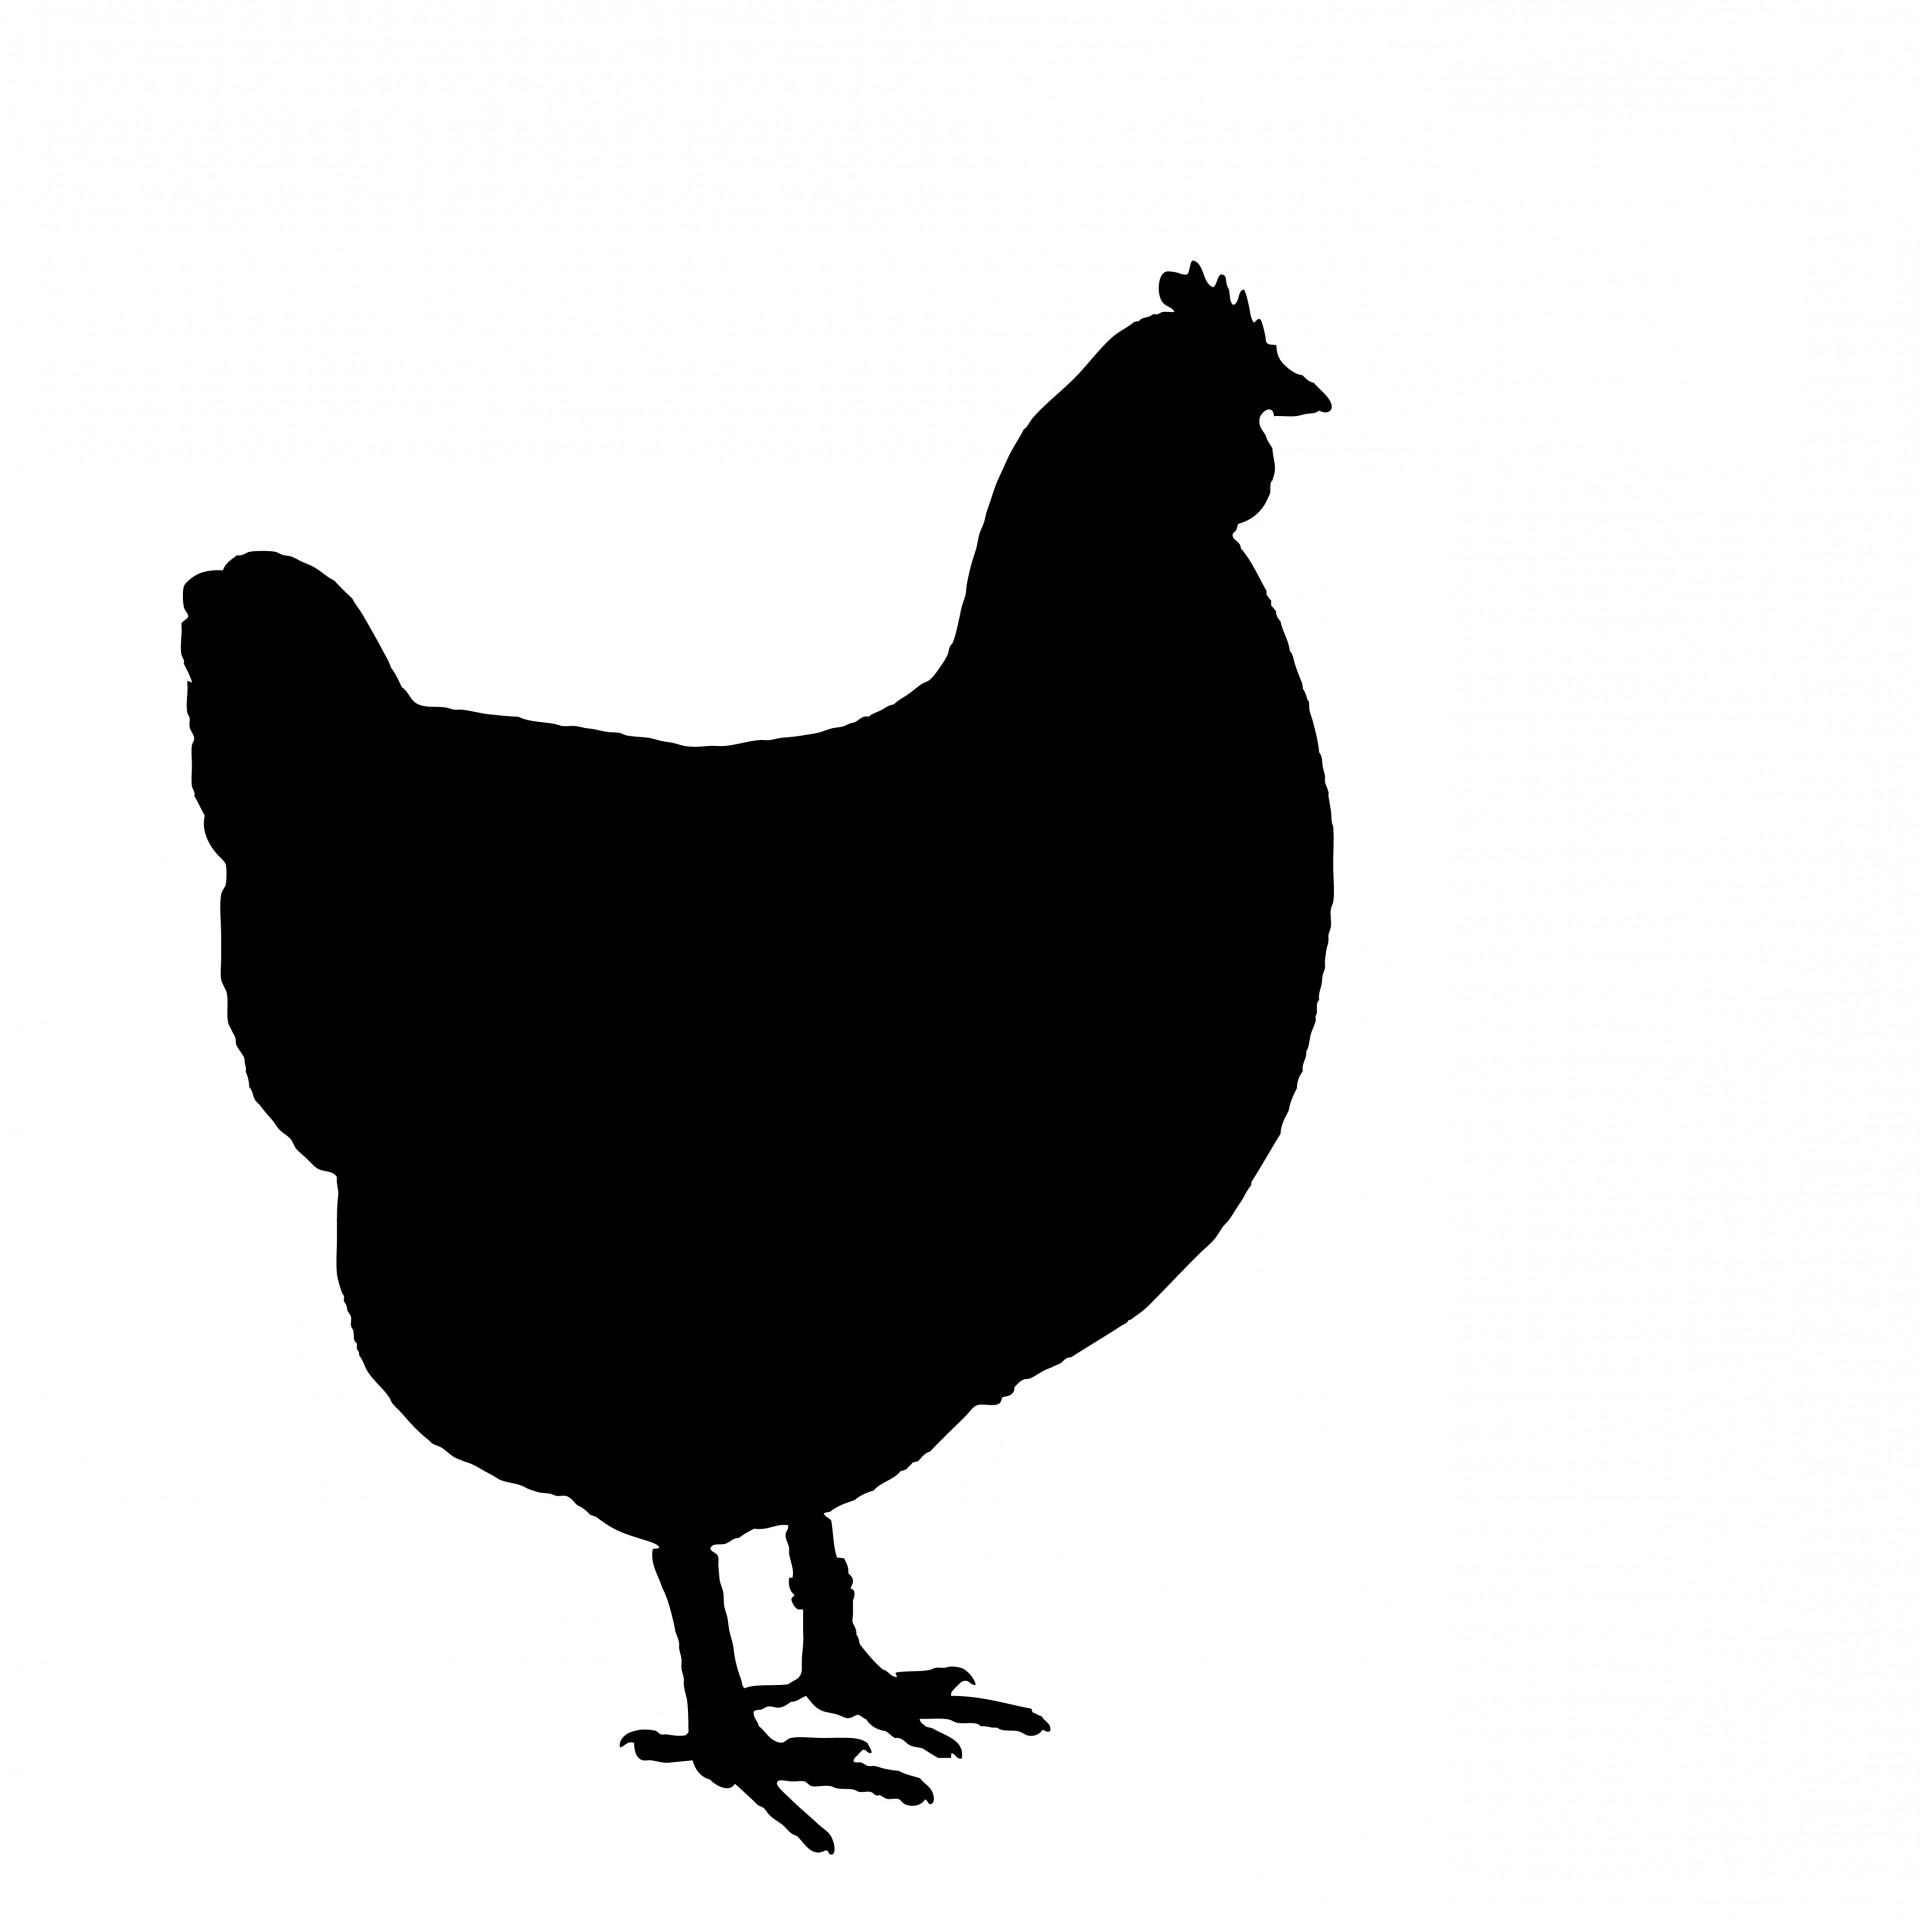 chicken silhouette chicken silhouette clip art at getdrawings free download chicken silhouette